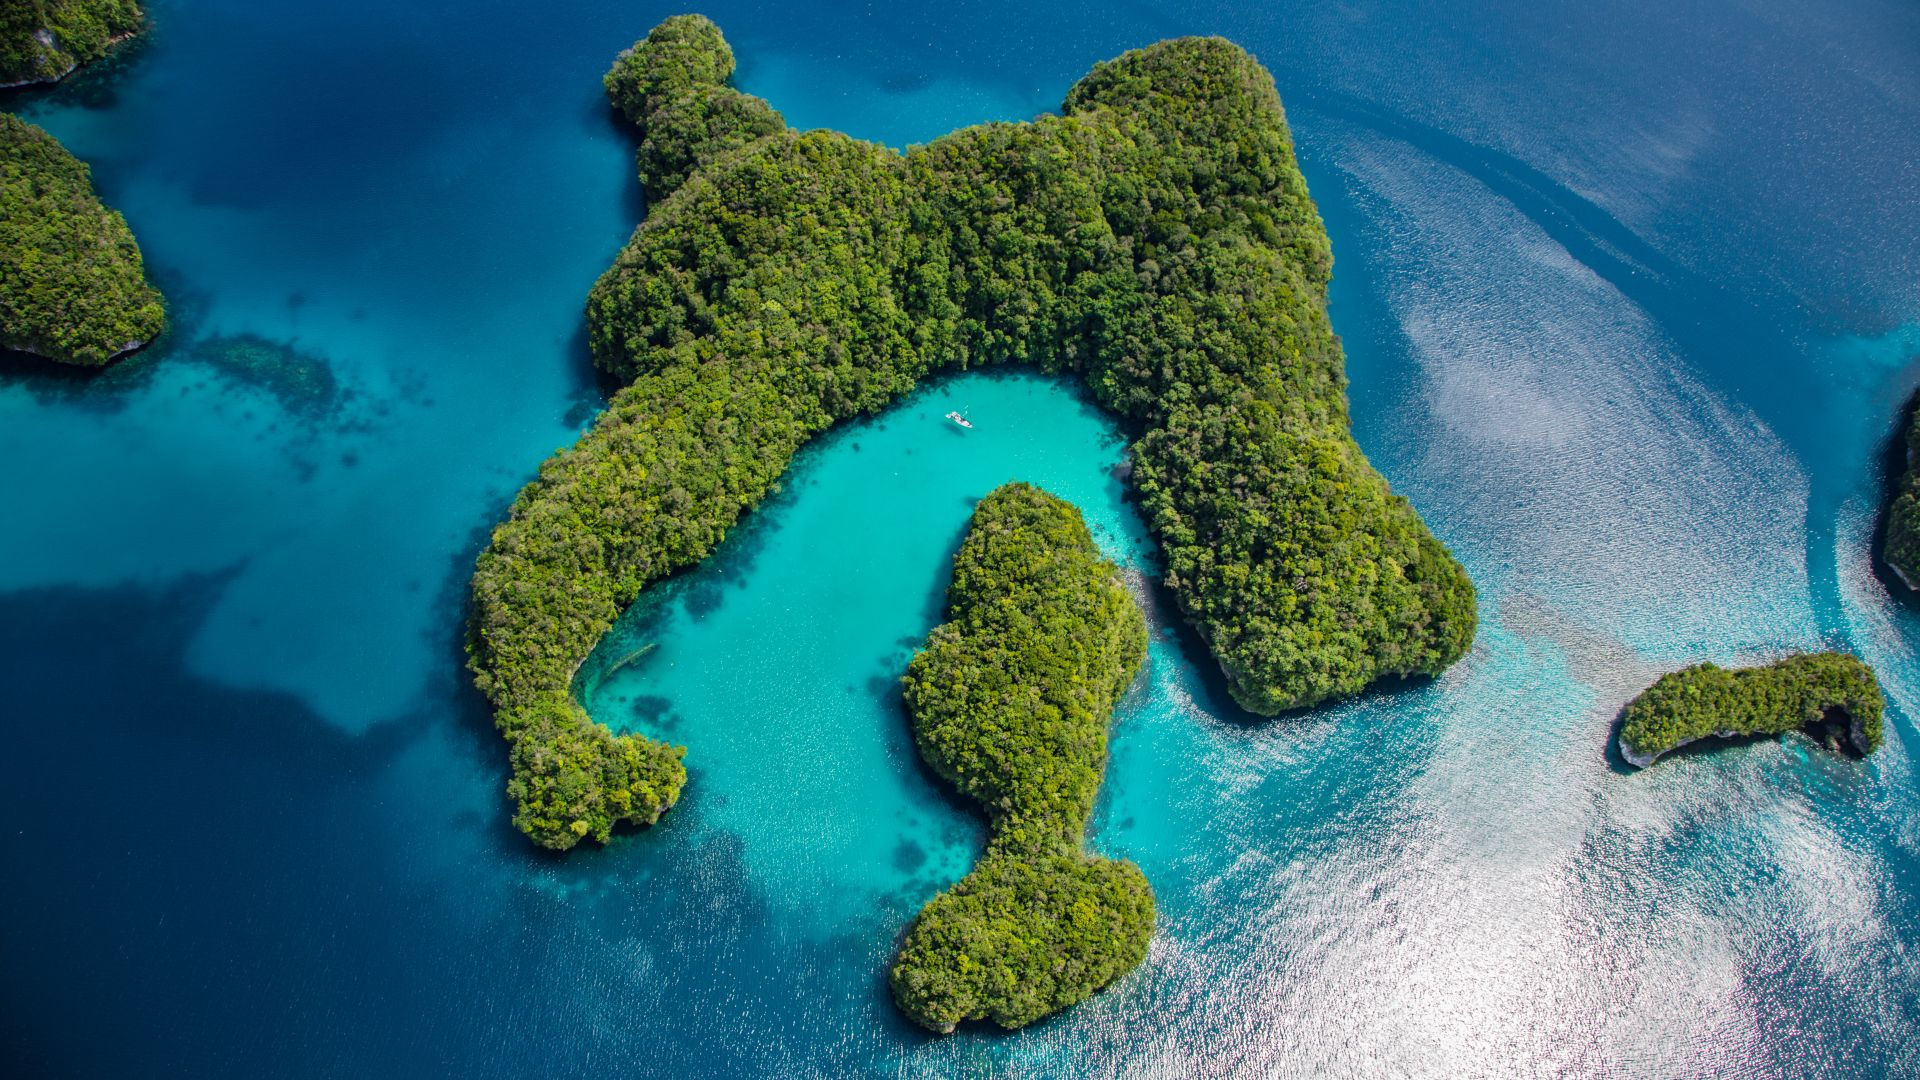 Wallpaper palau philippines ocean islands 8k nature for Wallpaper home philippines